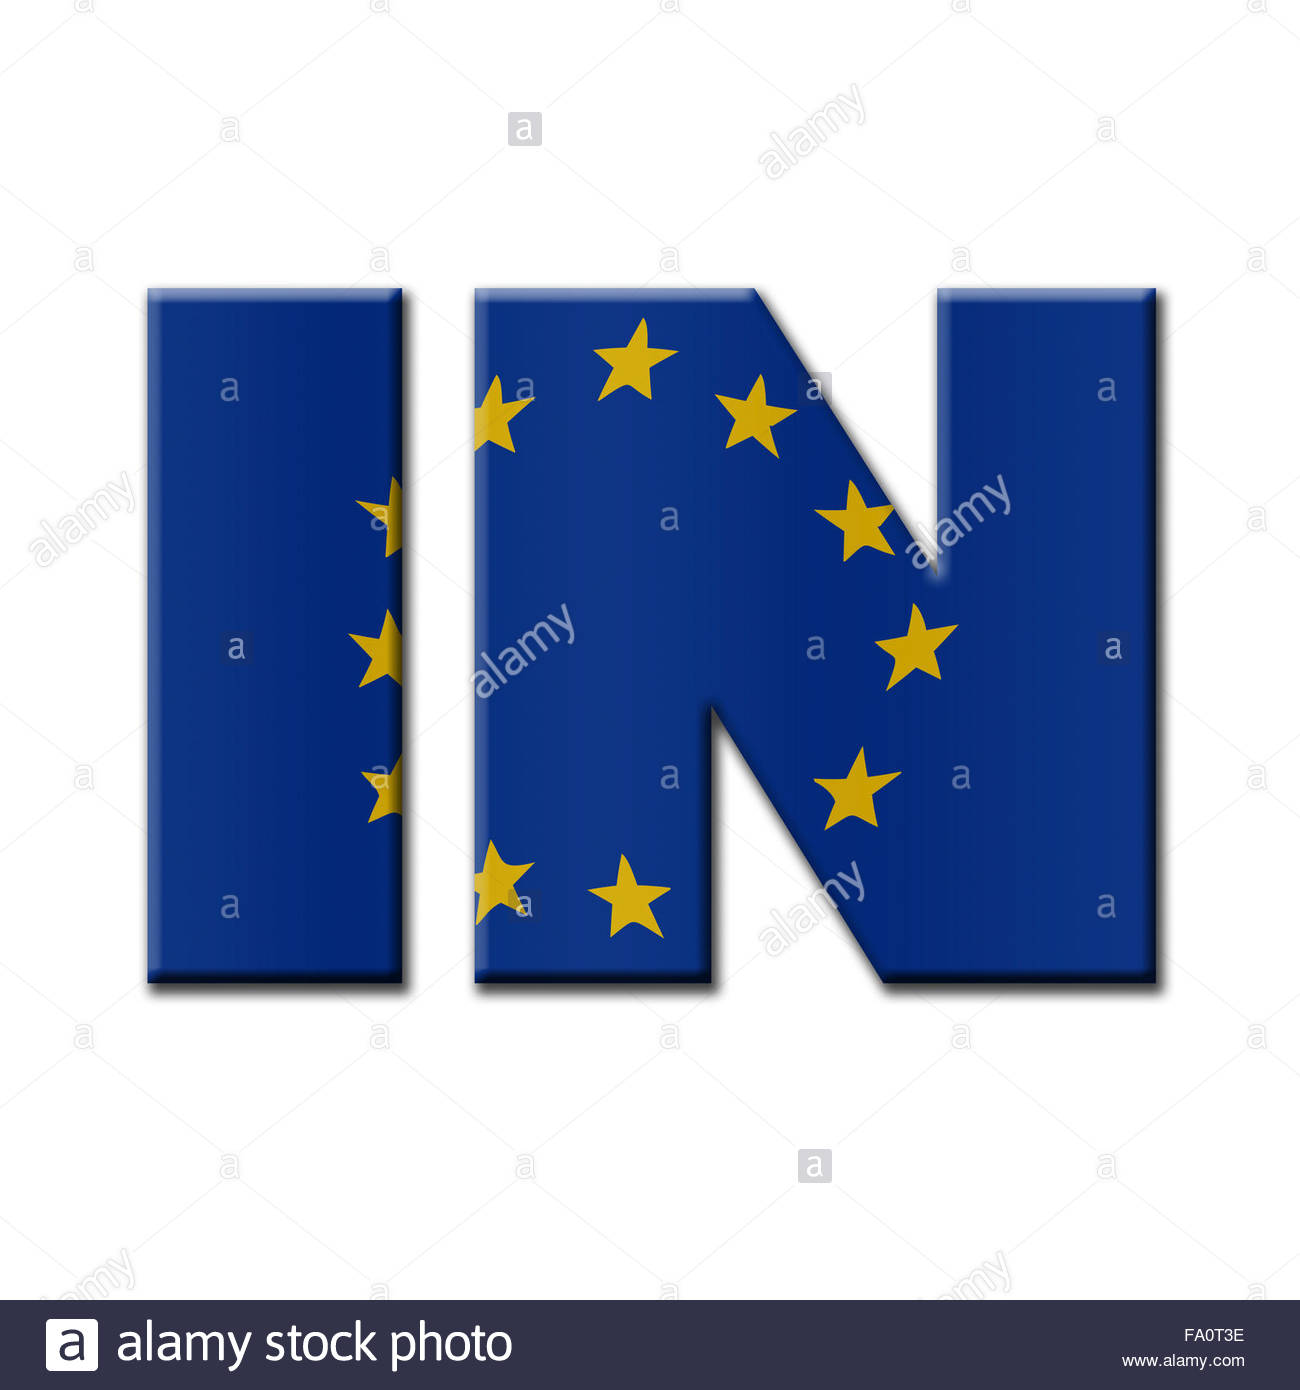 Digital Illustration - British In/Out EU referendum. IN with European Union flag. - Stock Image